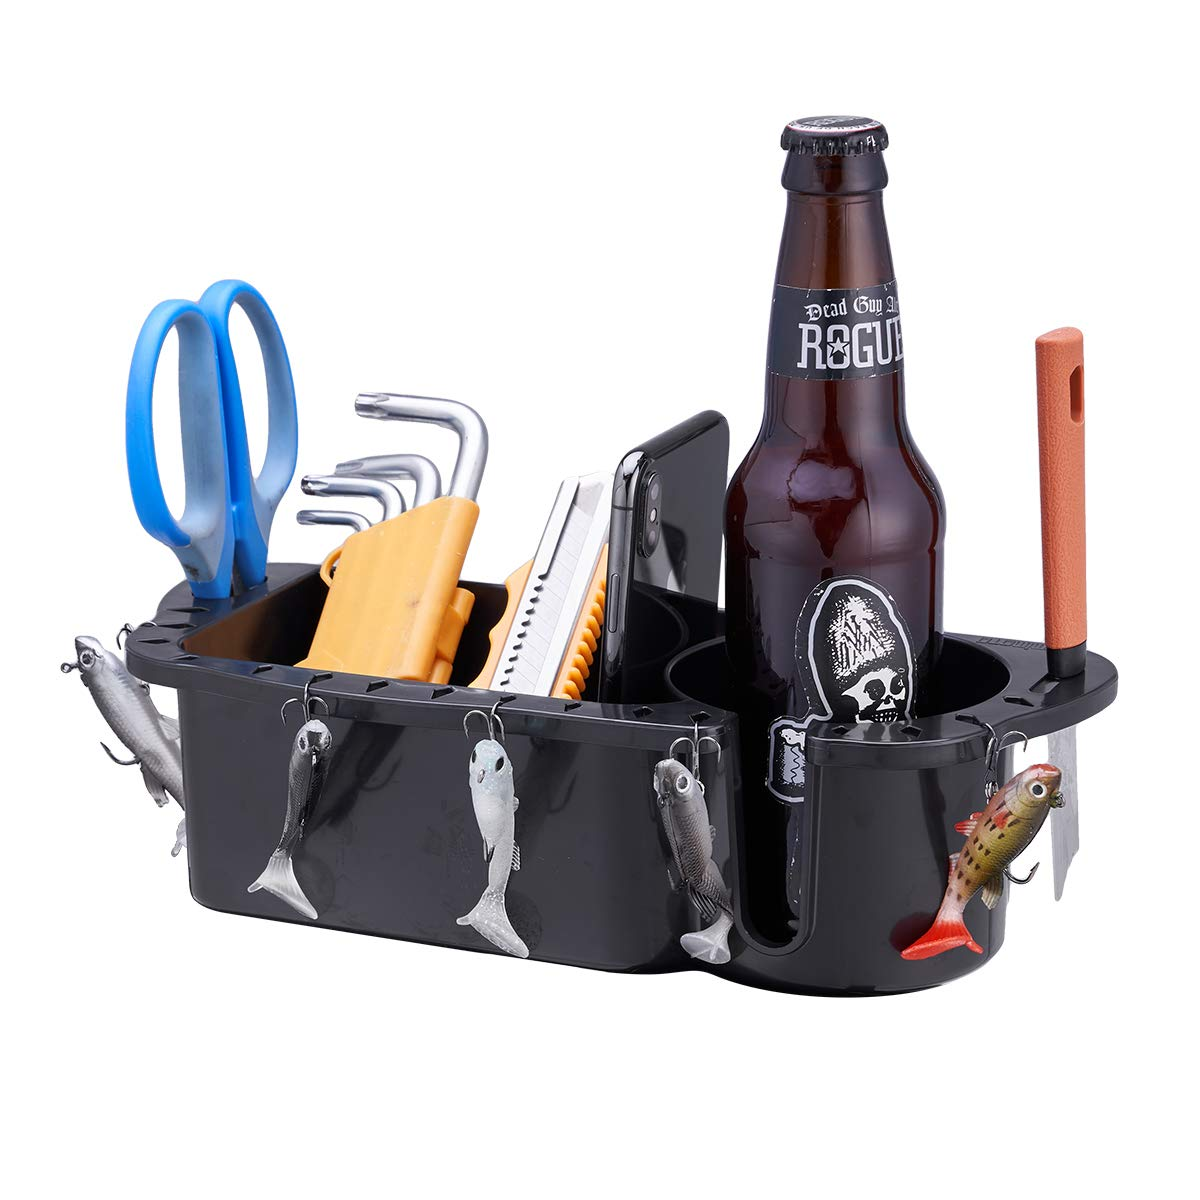 kemimoto Boat Organizer, Boat Cup Holder Marine Caddy Household Storage Box Black by kemimoto